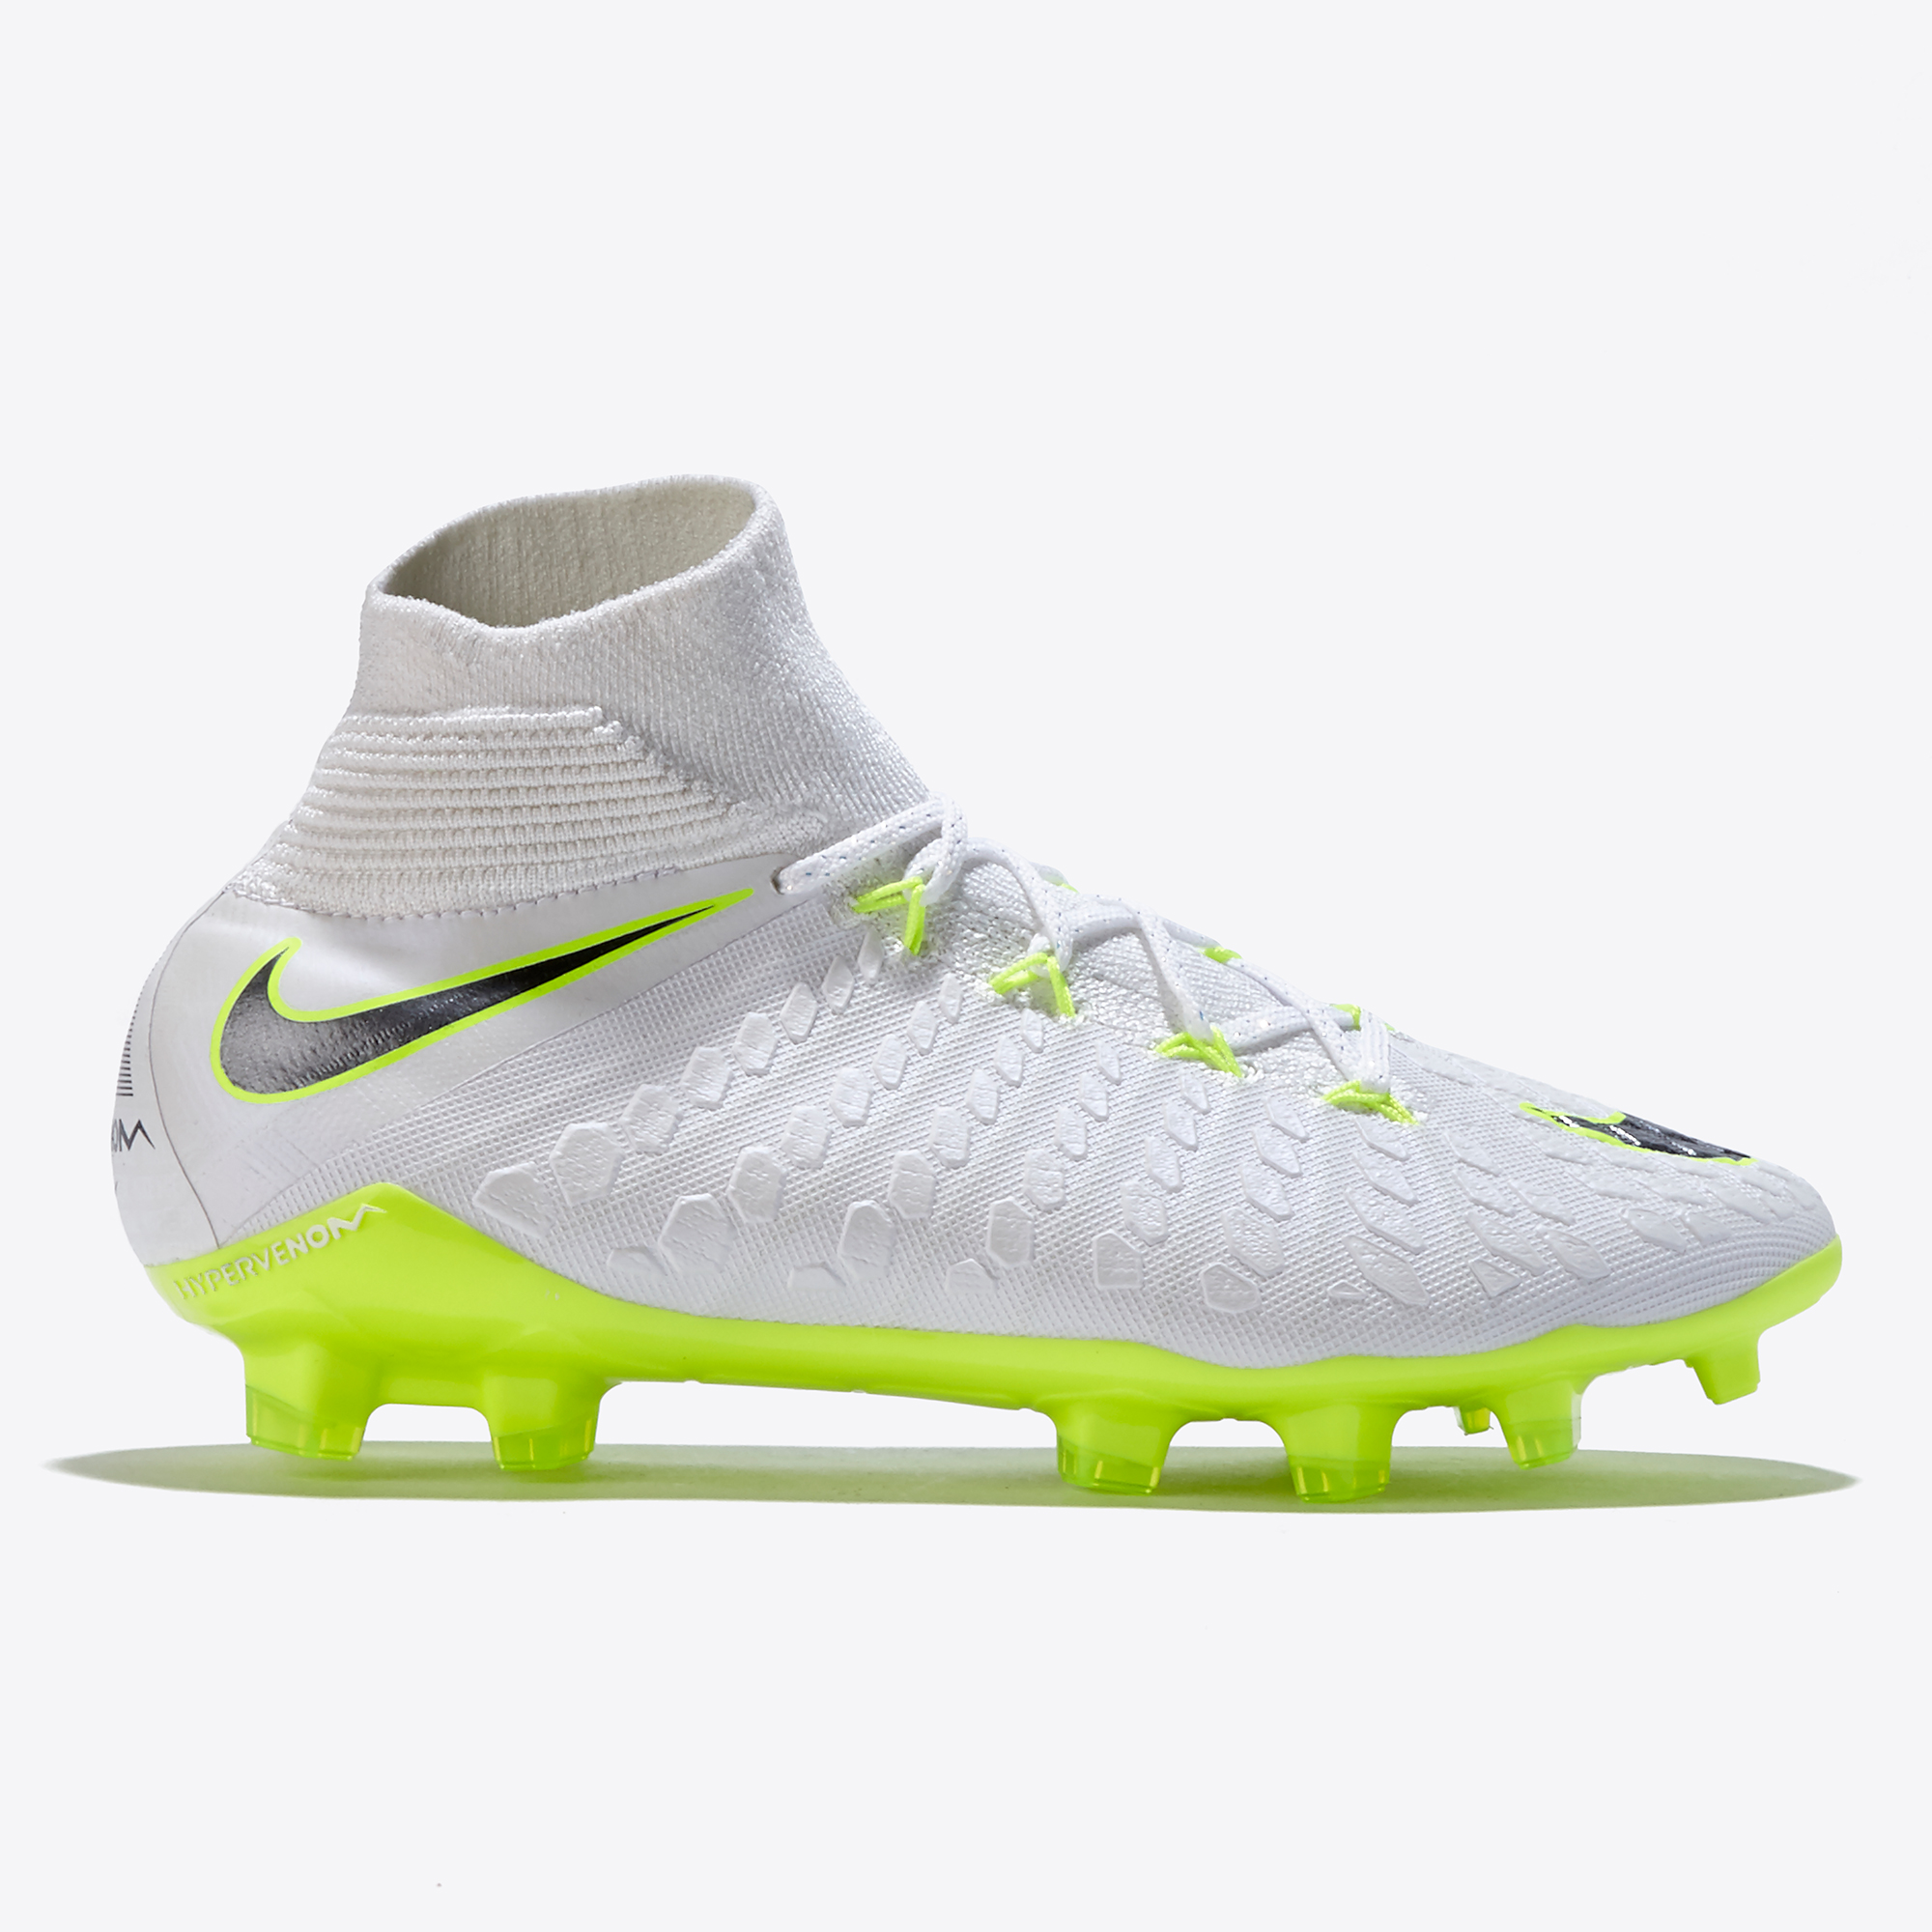 Chaussures de football pour terrain dur Nike Hypervenom Phantom 3 Elite Dynamic Fit - Enfant